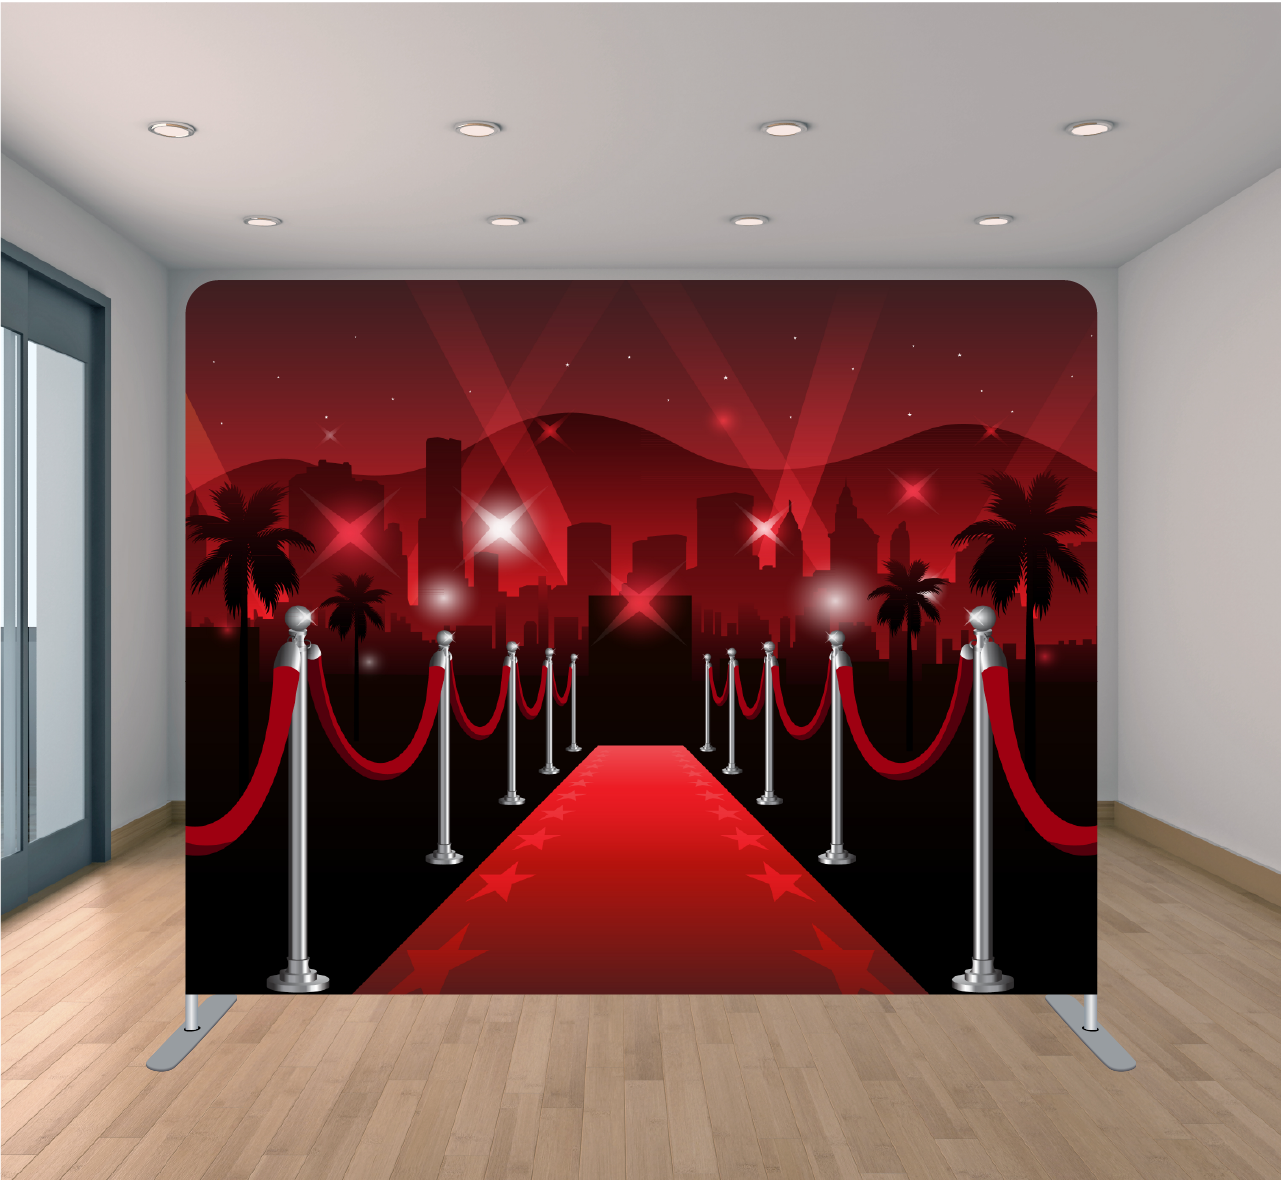 8X8 Pillowcase Tension Backdrop- Hollywood